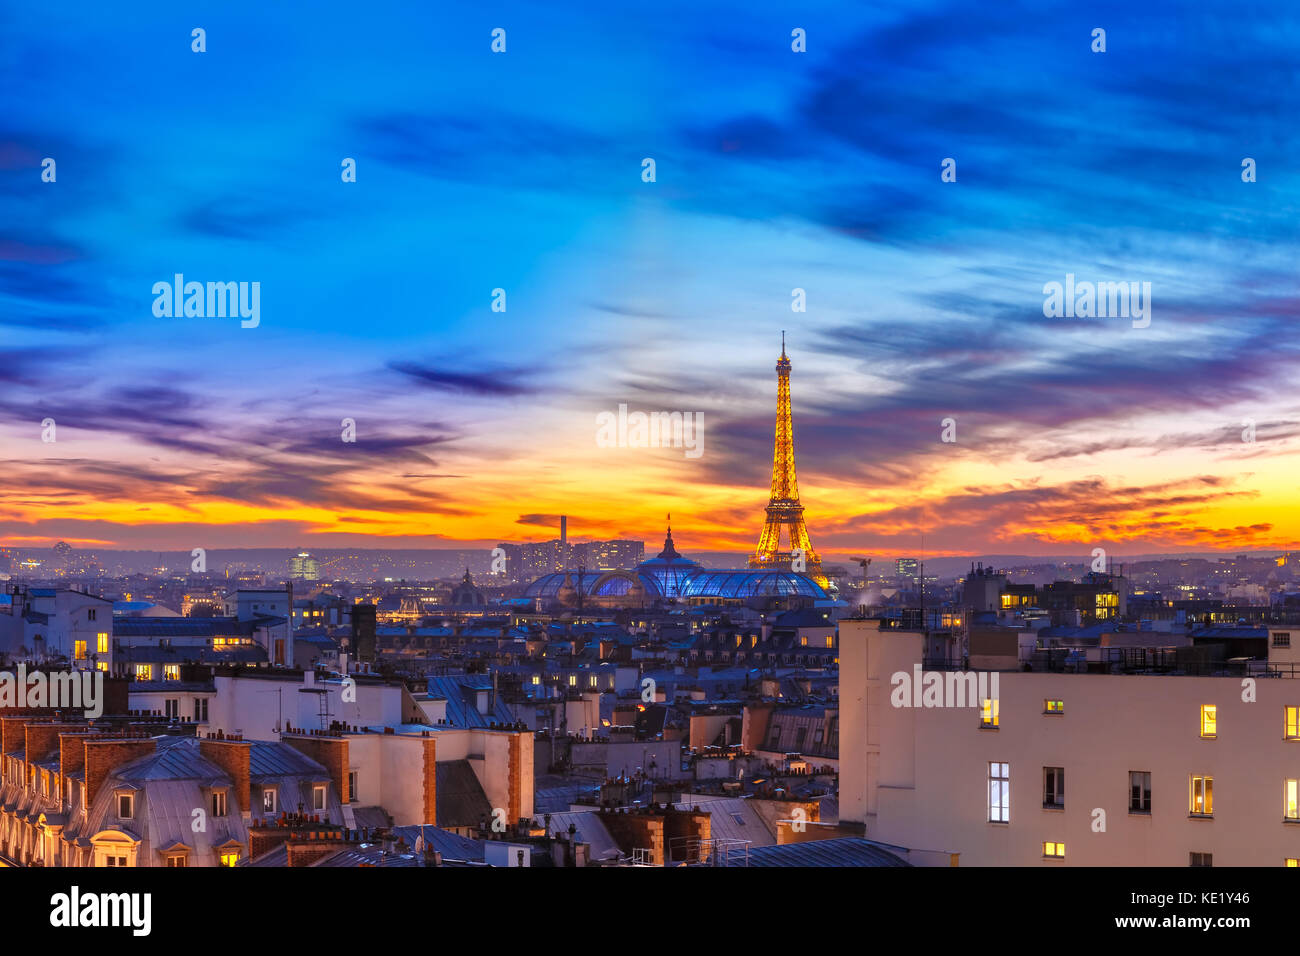 Shimmering Eiffel Tower at sunset in Paris, France Stock Photo